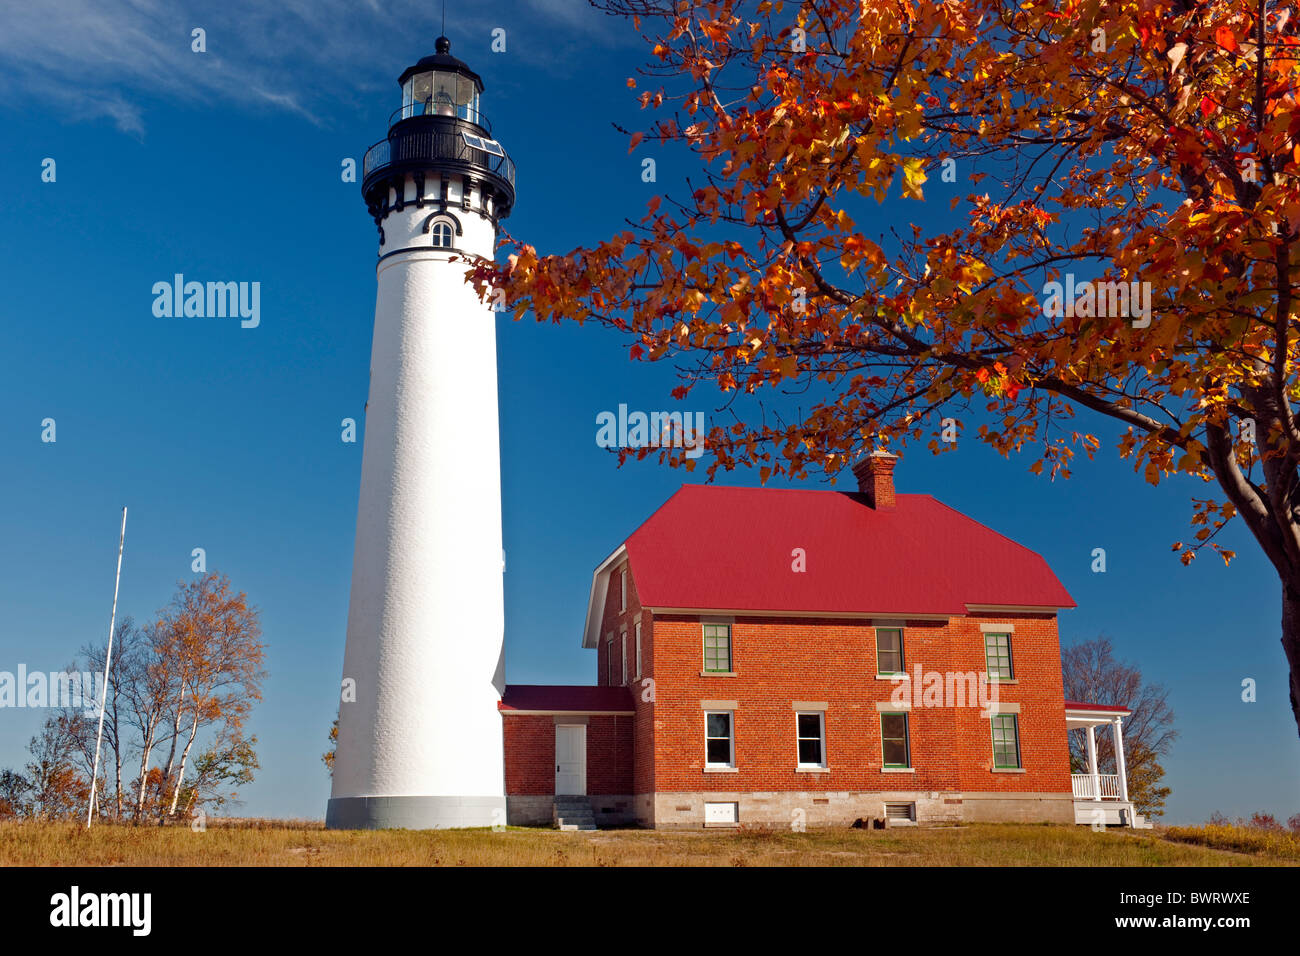 The Au Sable Lighthouse (1874) is part of Pictured Rocks National Lakeshore in Michigan's Upper Peninsula. - Stock Image